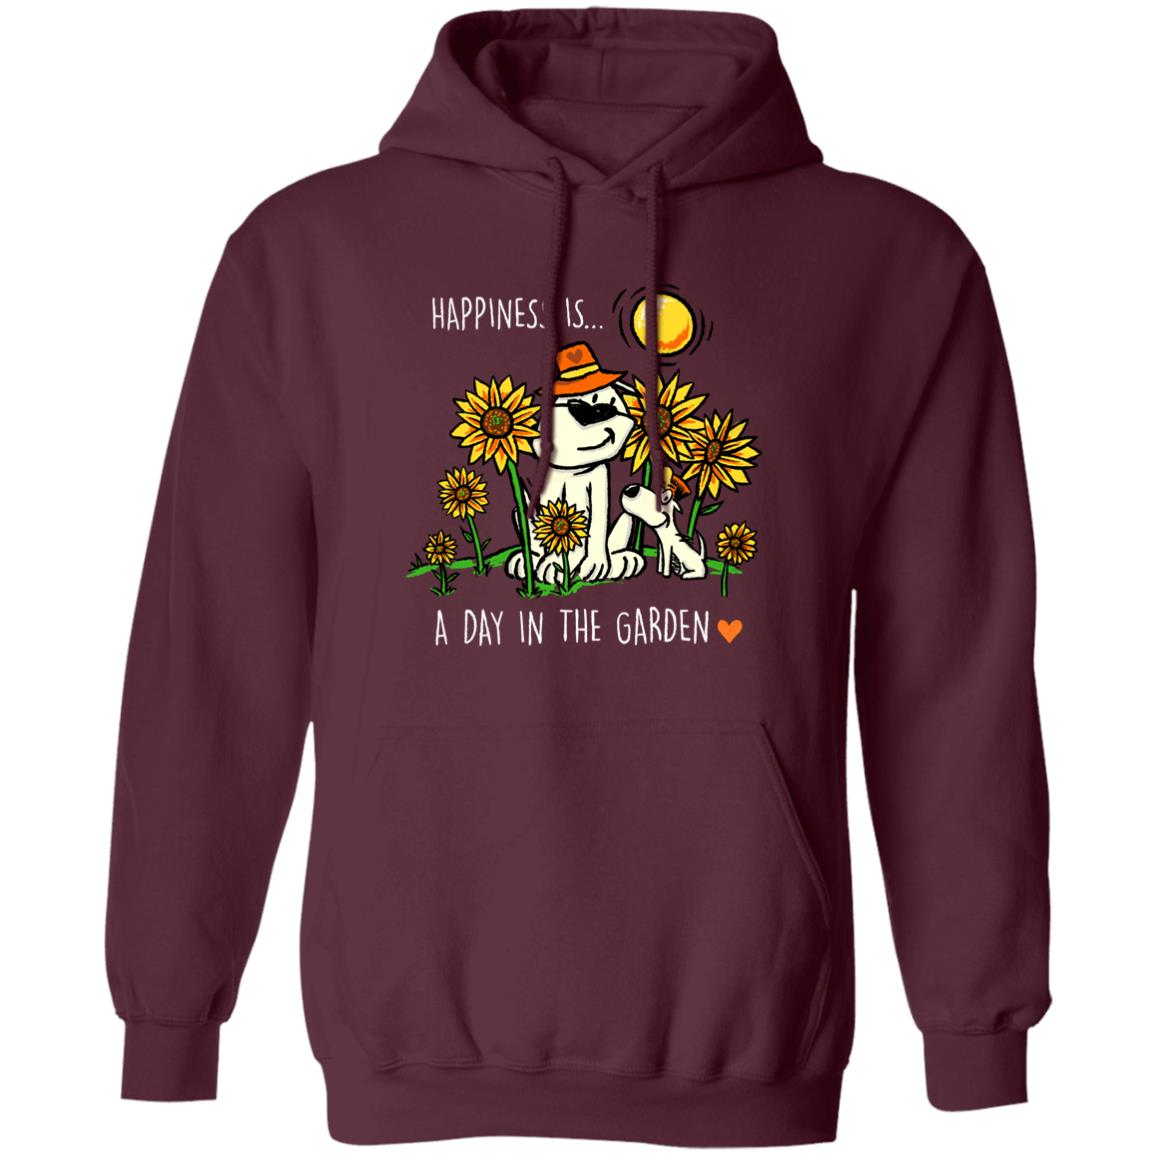 Happiness Is A Day In The Garden Hoodie Maroon  🐾 Deal Up To 25% Off!